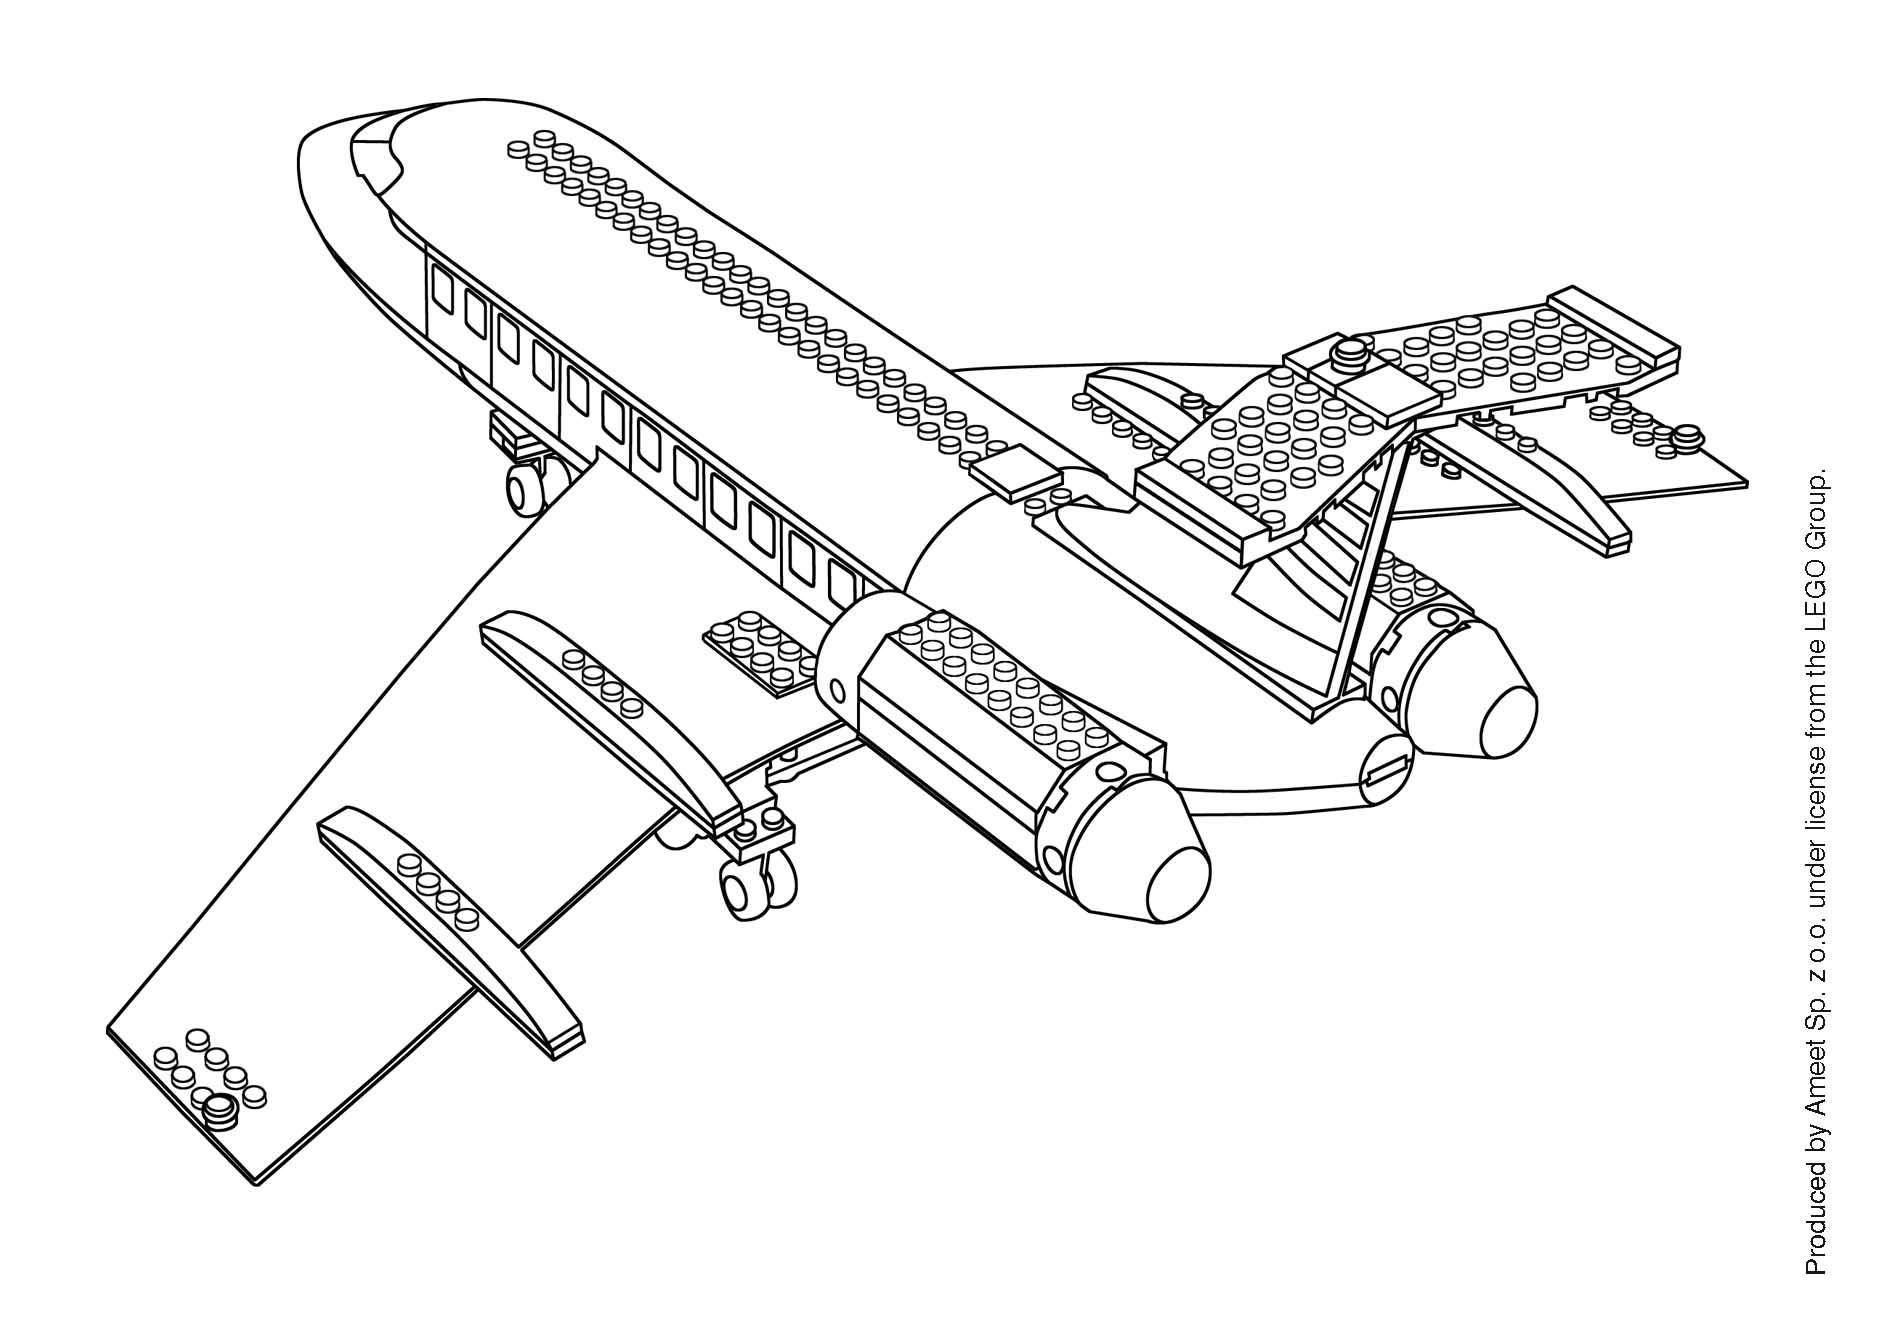 Coloriage Dans L Avion: Clubdemax.com, Coloriage Lego City Avion